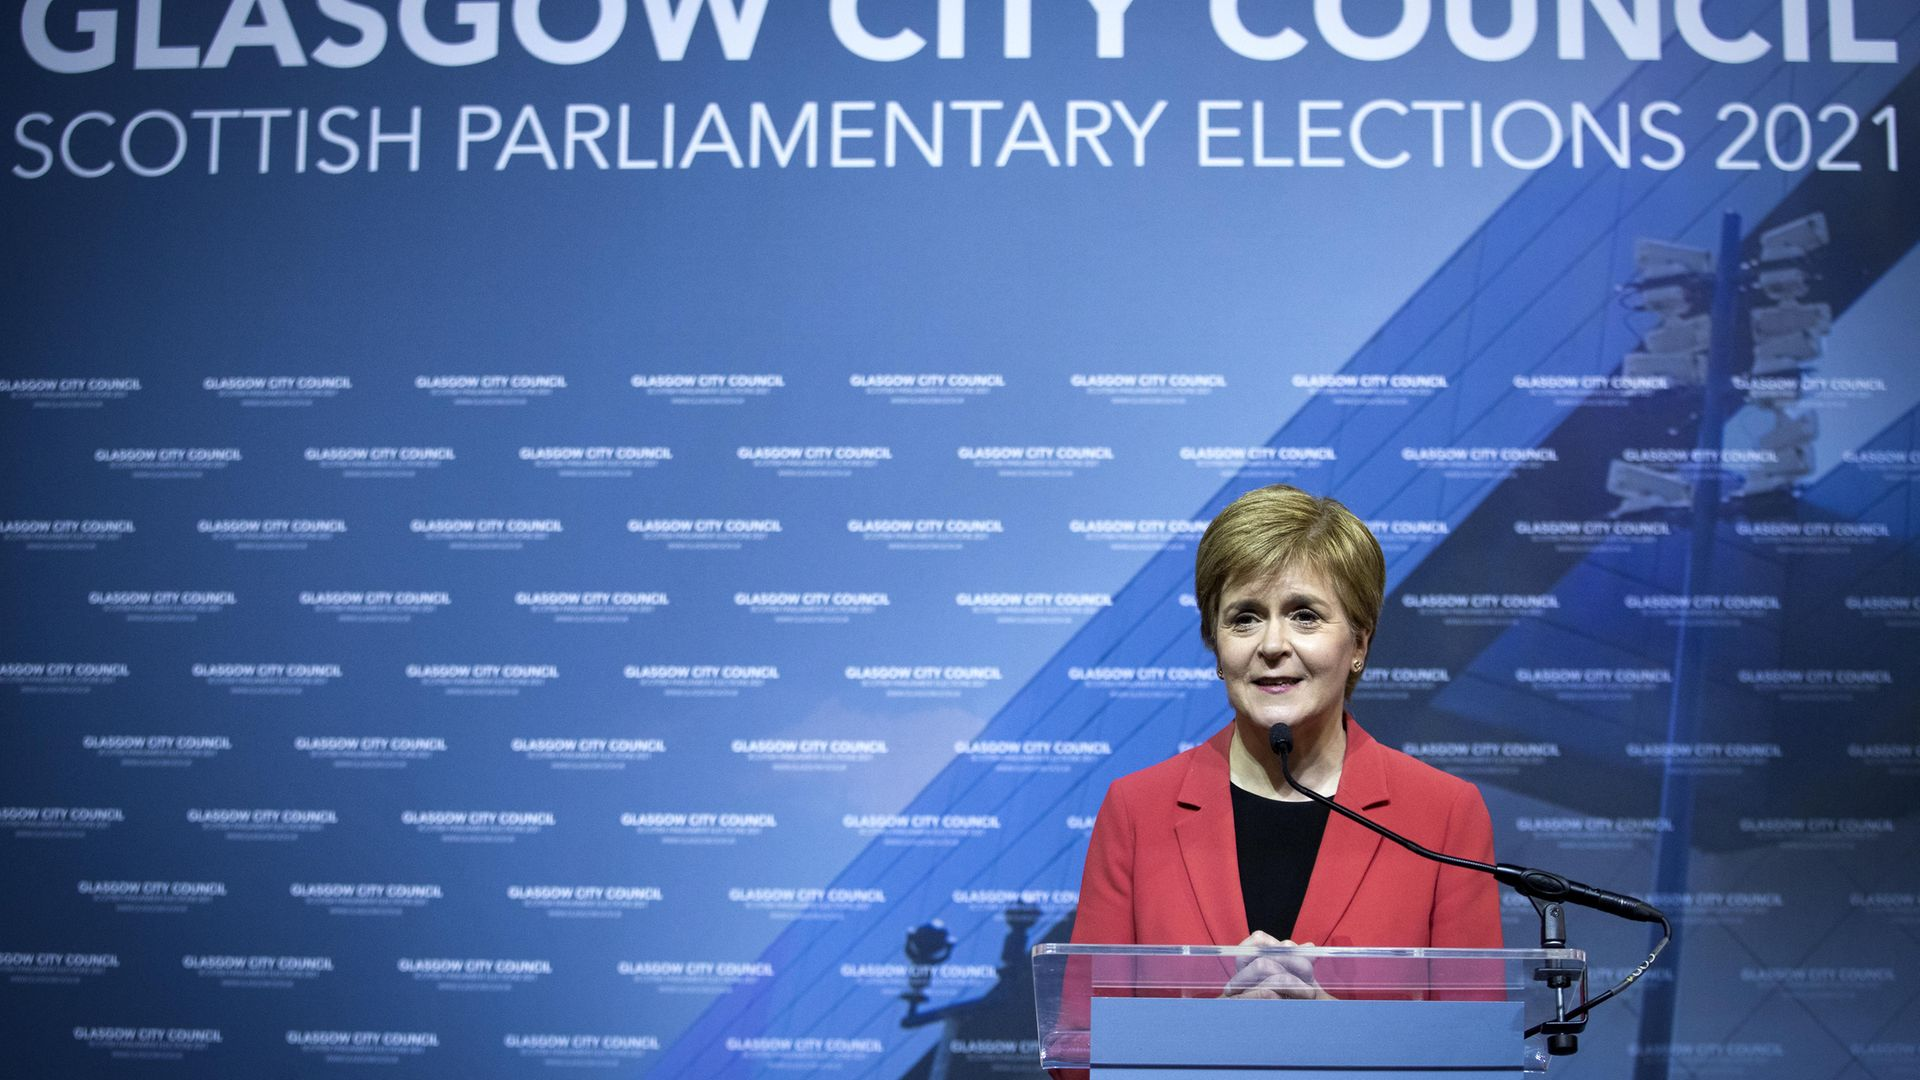 First Minister and SNP party leader Nicola Sturgeon delivers her speech on stage after retaining her seat for Glasgow Southside at the count for the Scottish Parliamentary Elections - Credit: PA